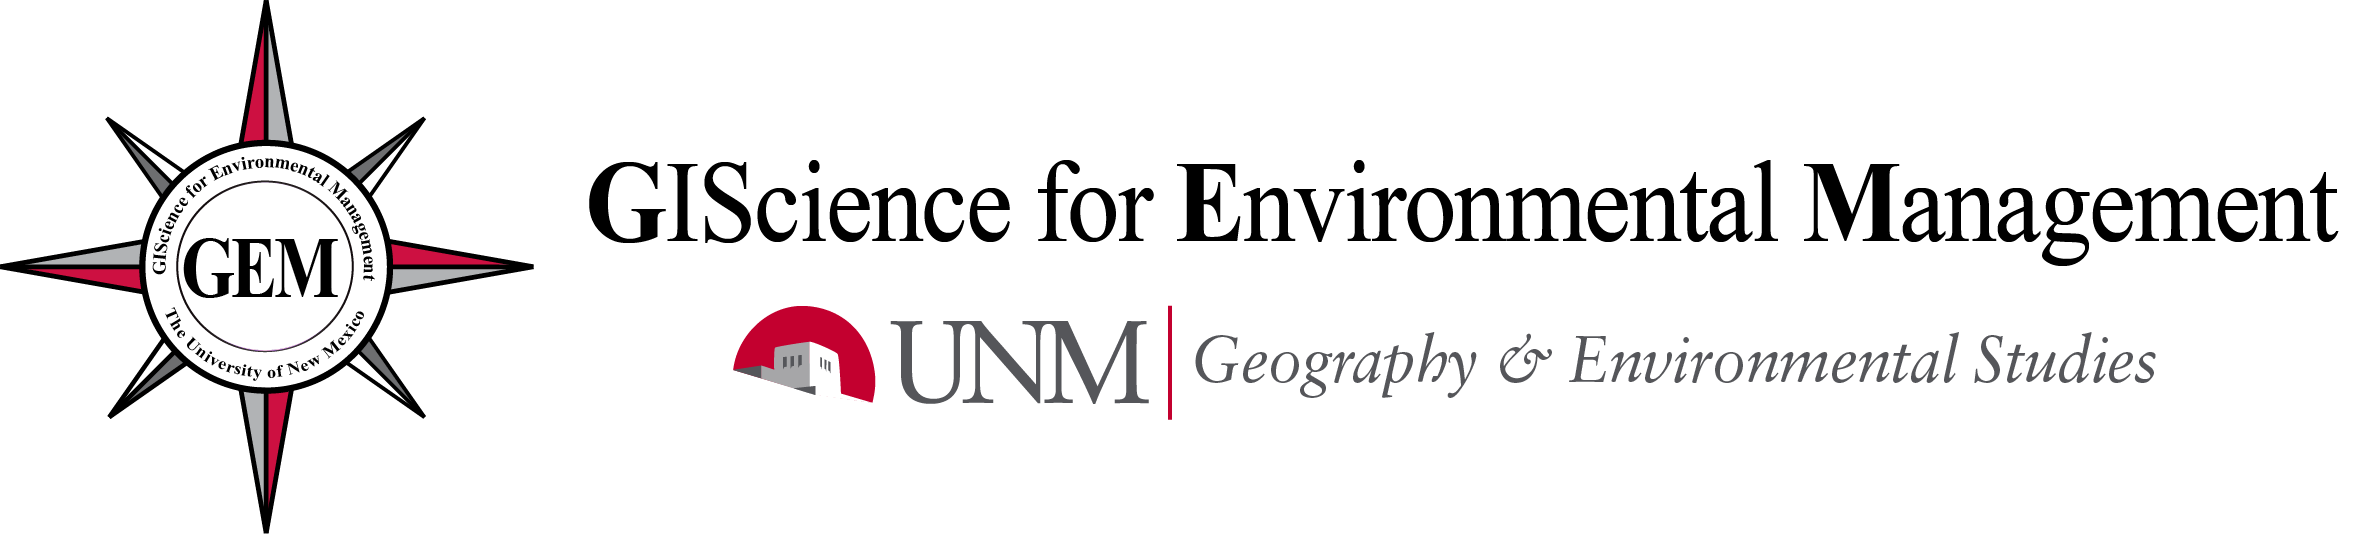 GEM - GIScience for Environmental Management